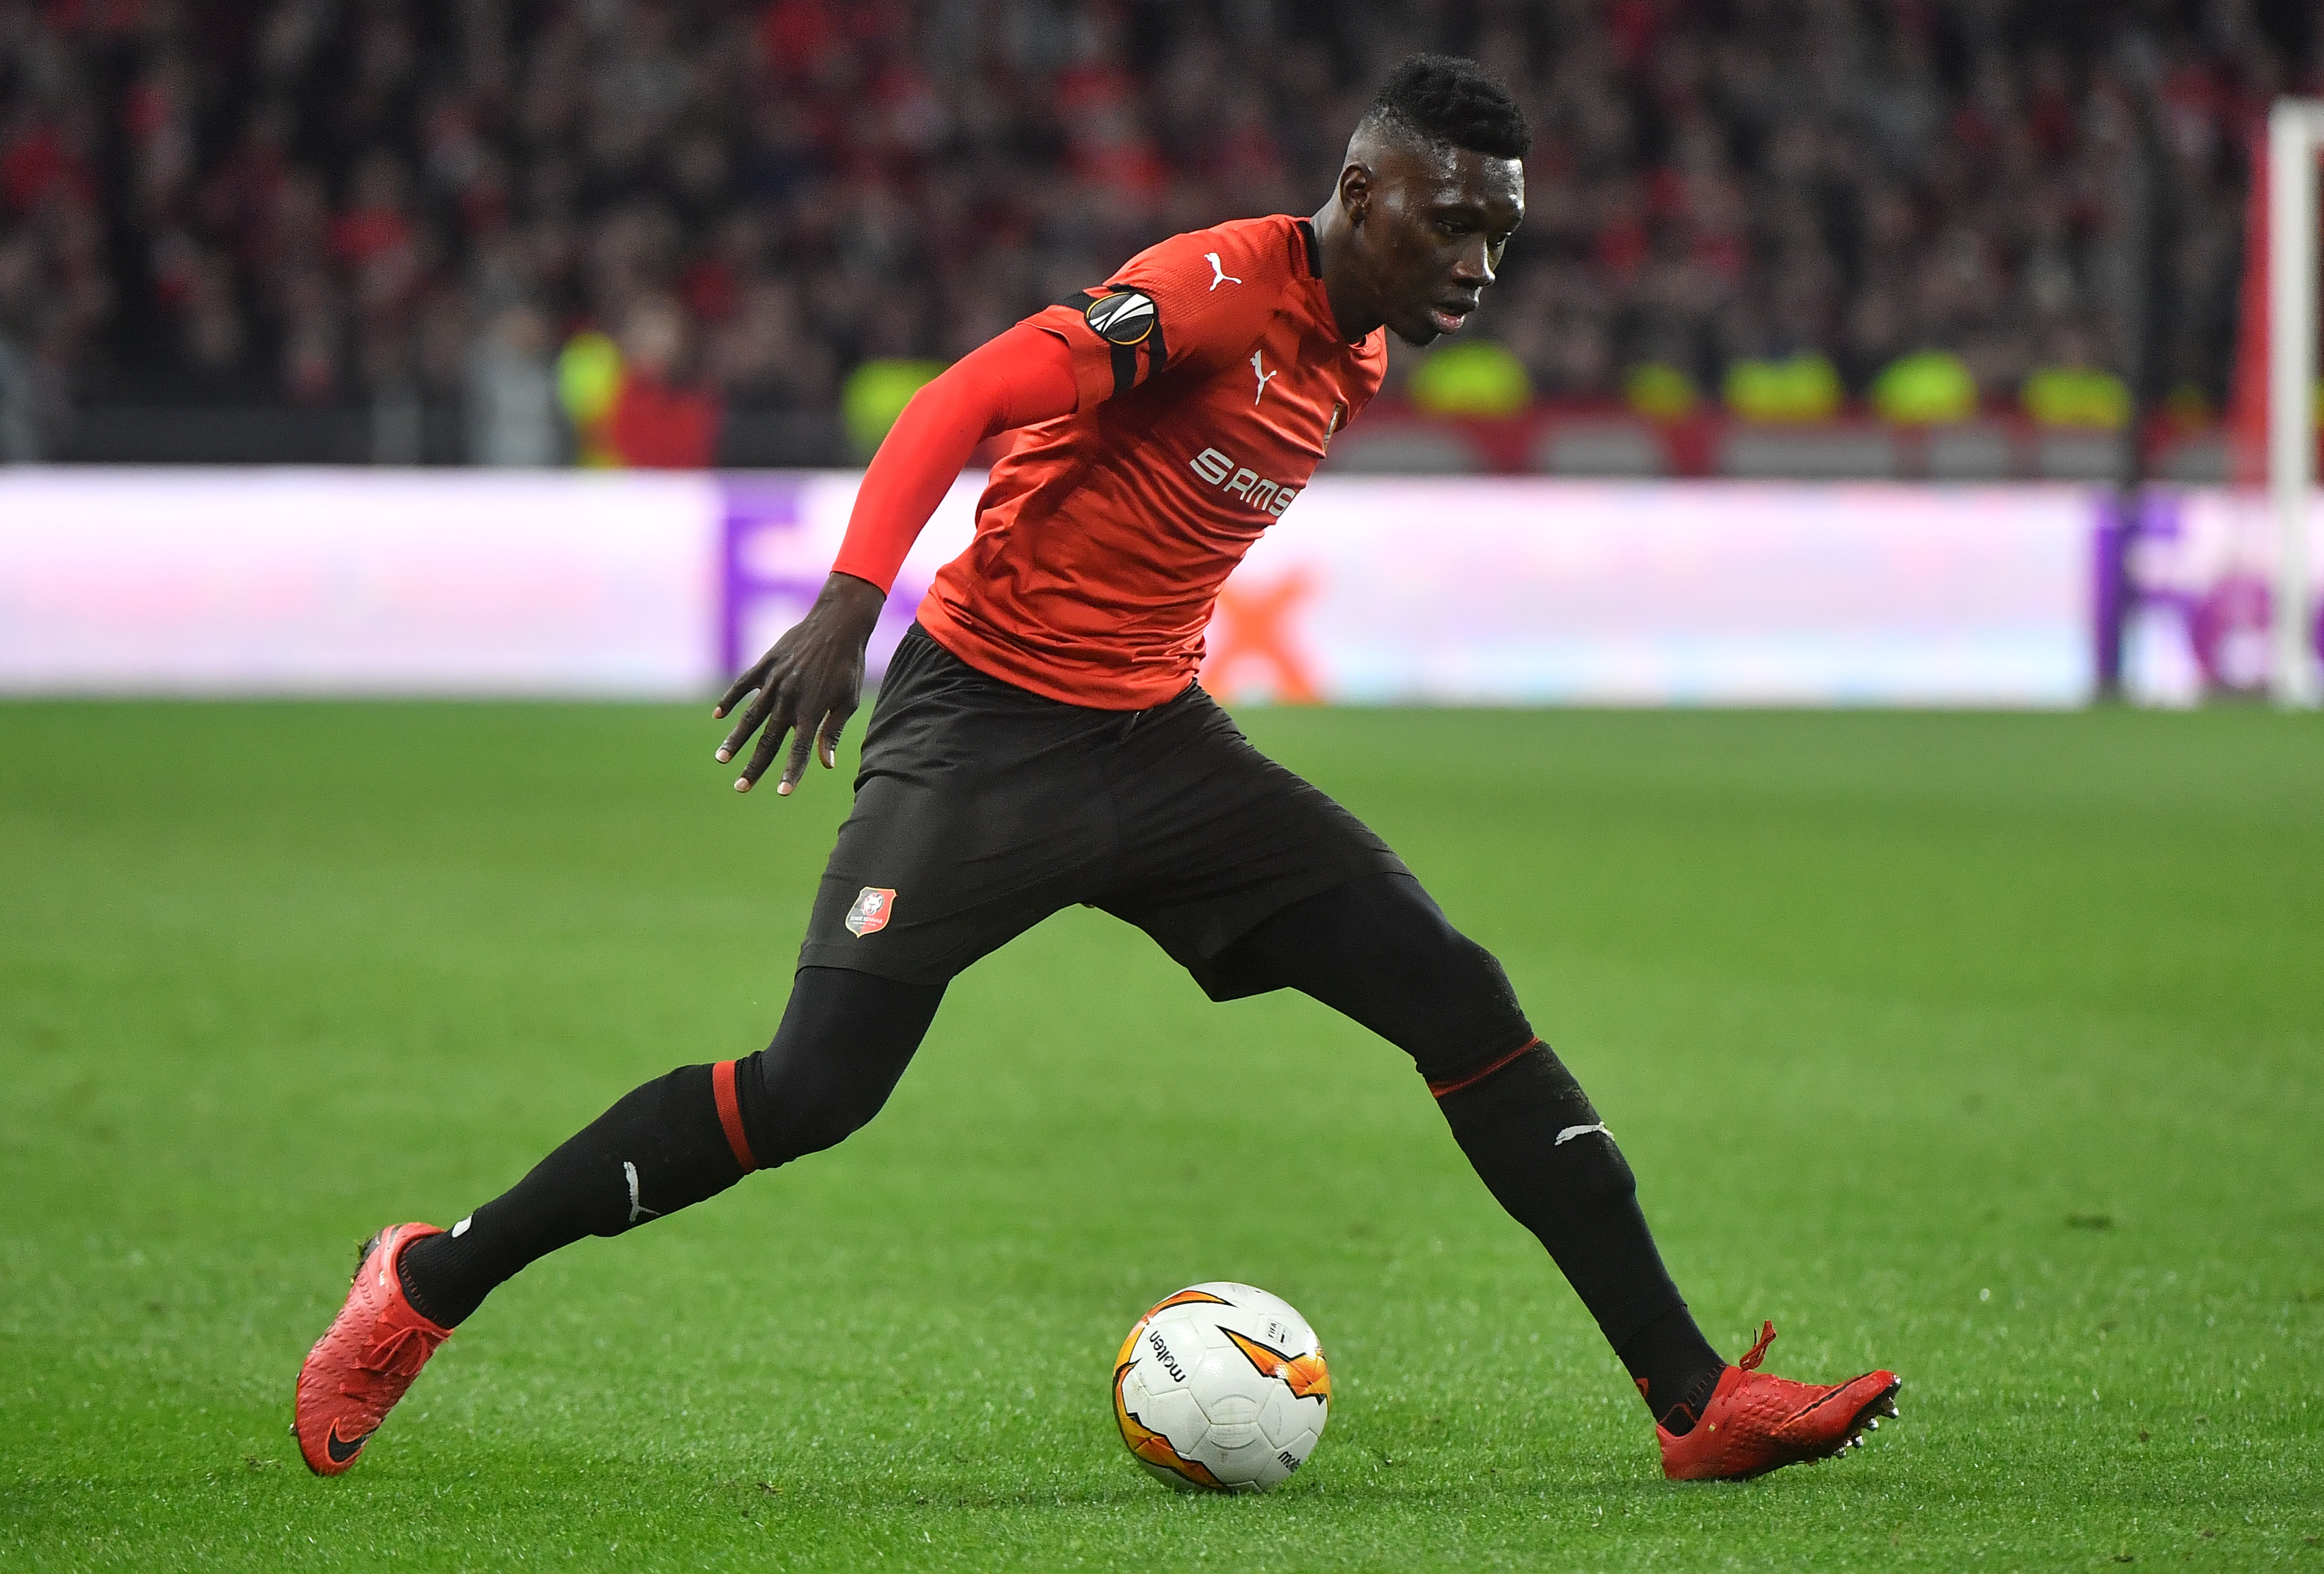 sports-a1844b805c8acd05e6540a8df71ac700 - Arsenal Hold Preliminary Talks With Rennes Over Ismaila Sarr